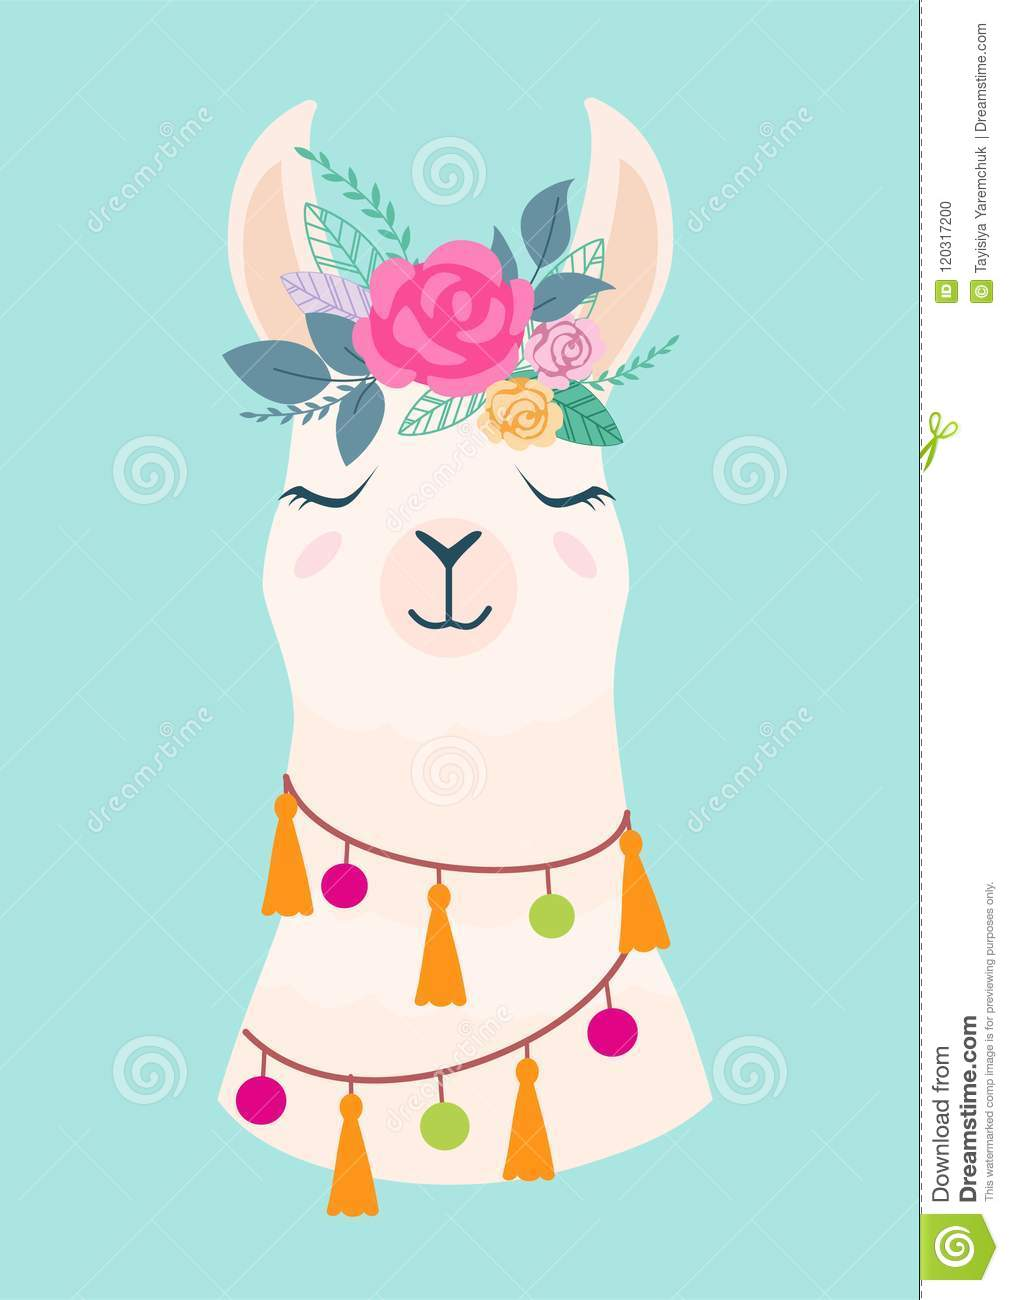 Vector illustration of cute cartoon llama with flowers. Stylish drawing for birthday cards, party invitations, poster and postcard